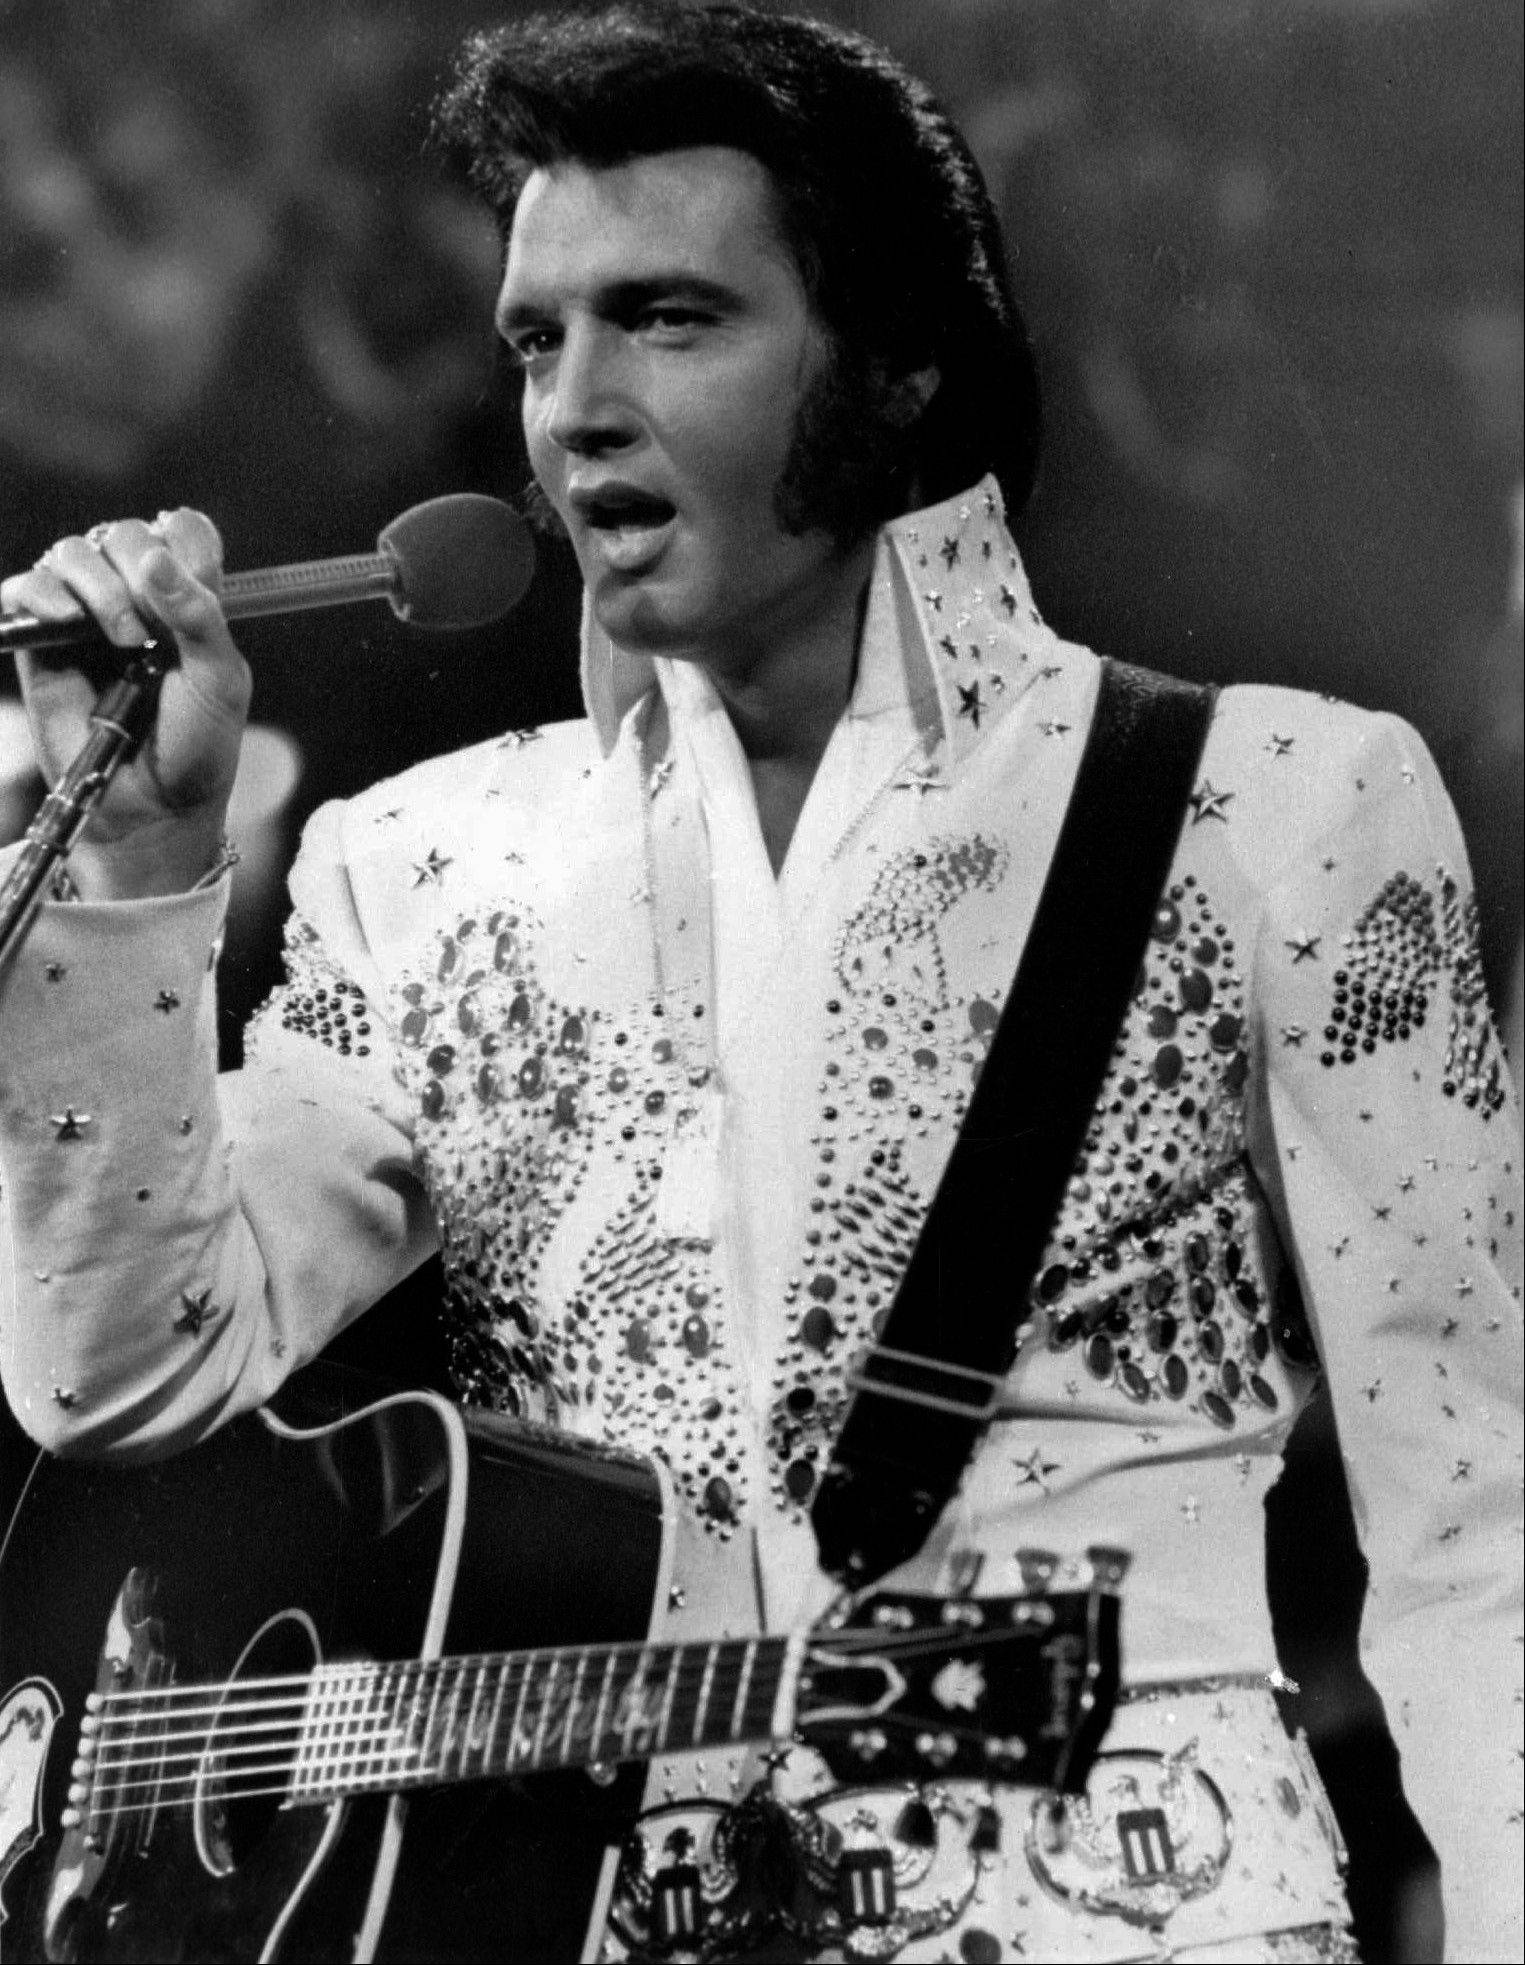 Singer Elvis Presley's estate has announced it has authorized holograms of the King of Rock.